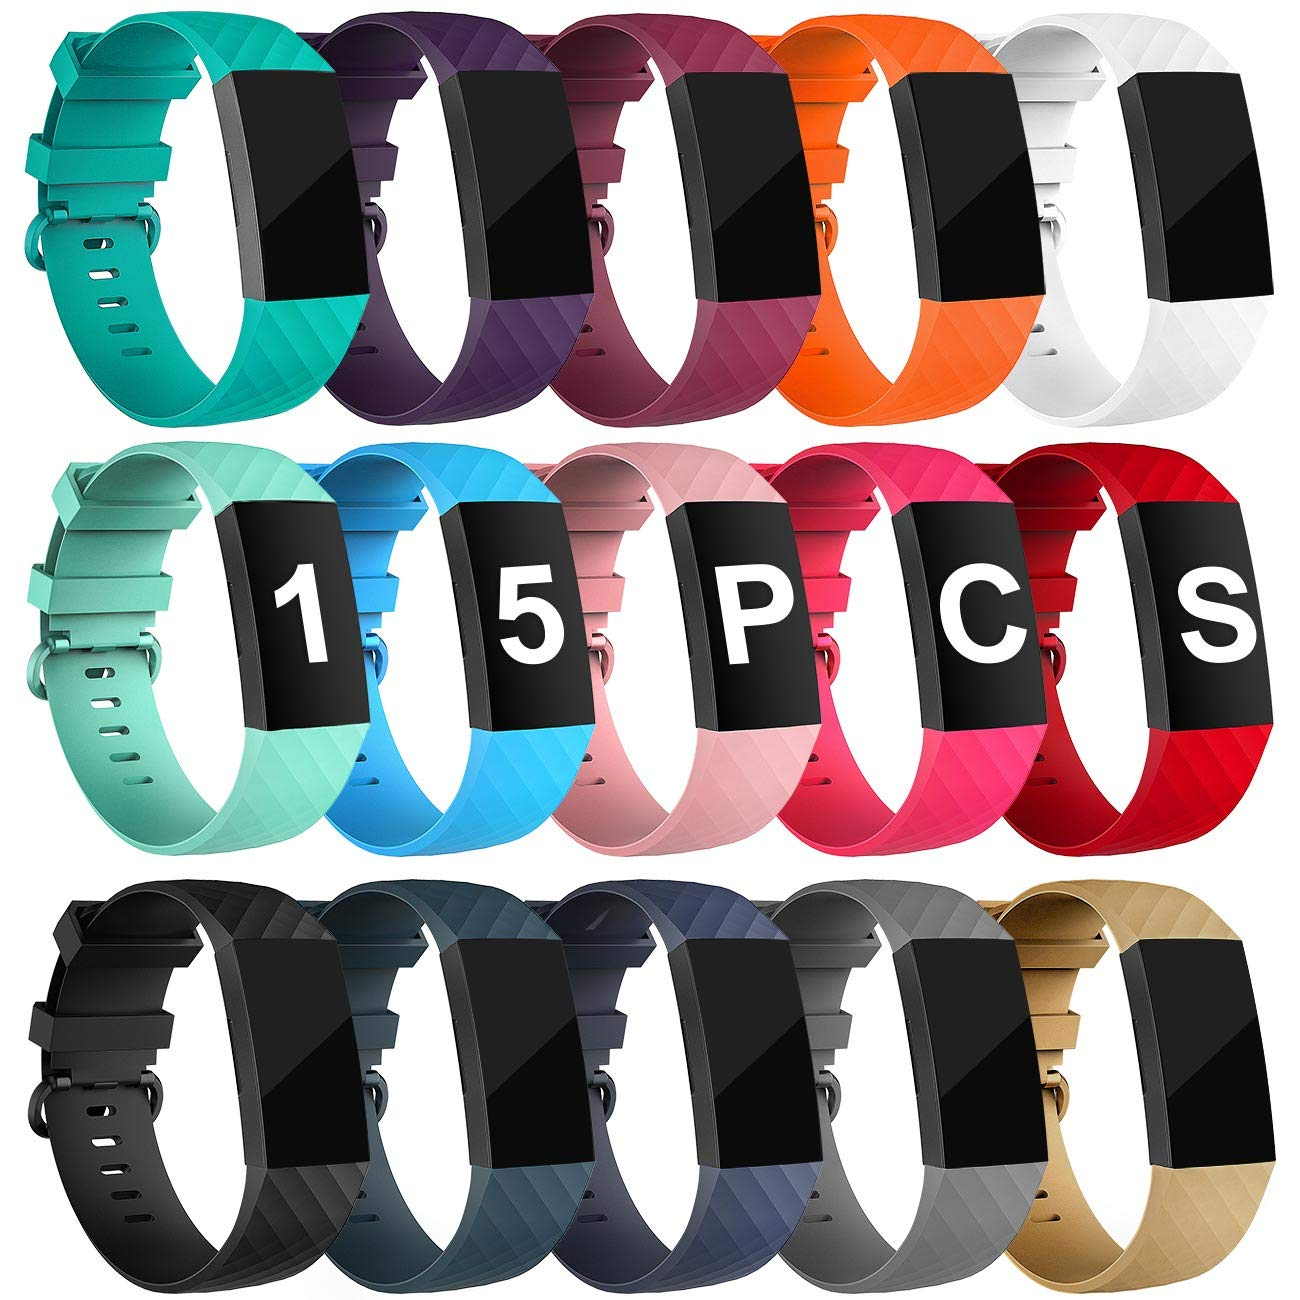 Velavior 15 Colors Bands for Fitbit Charge 3 / Charge3 SE, Waterproof Replacement Wristbands for Women Men Small Large (Small)